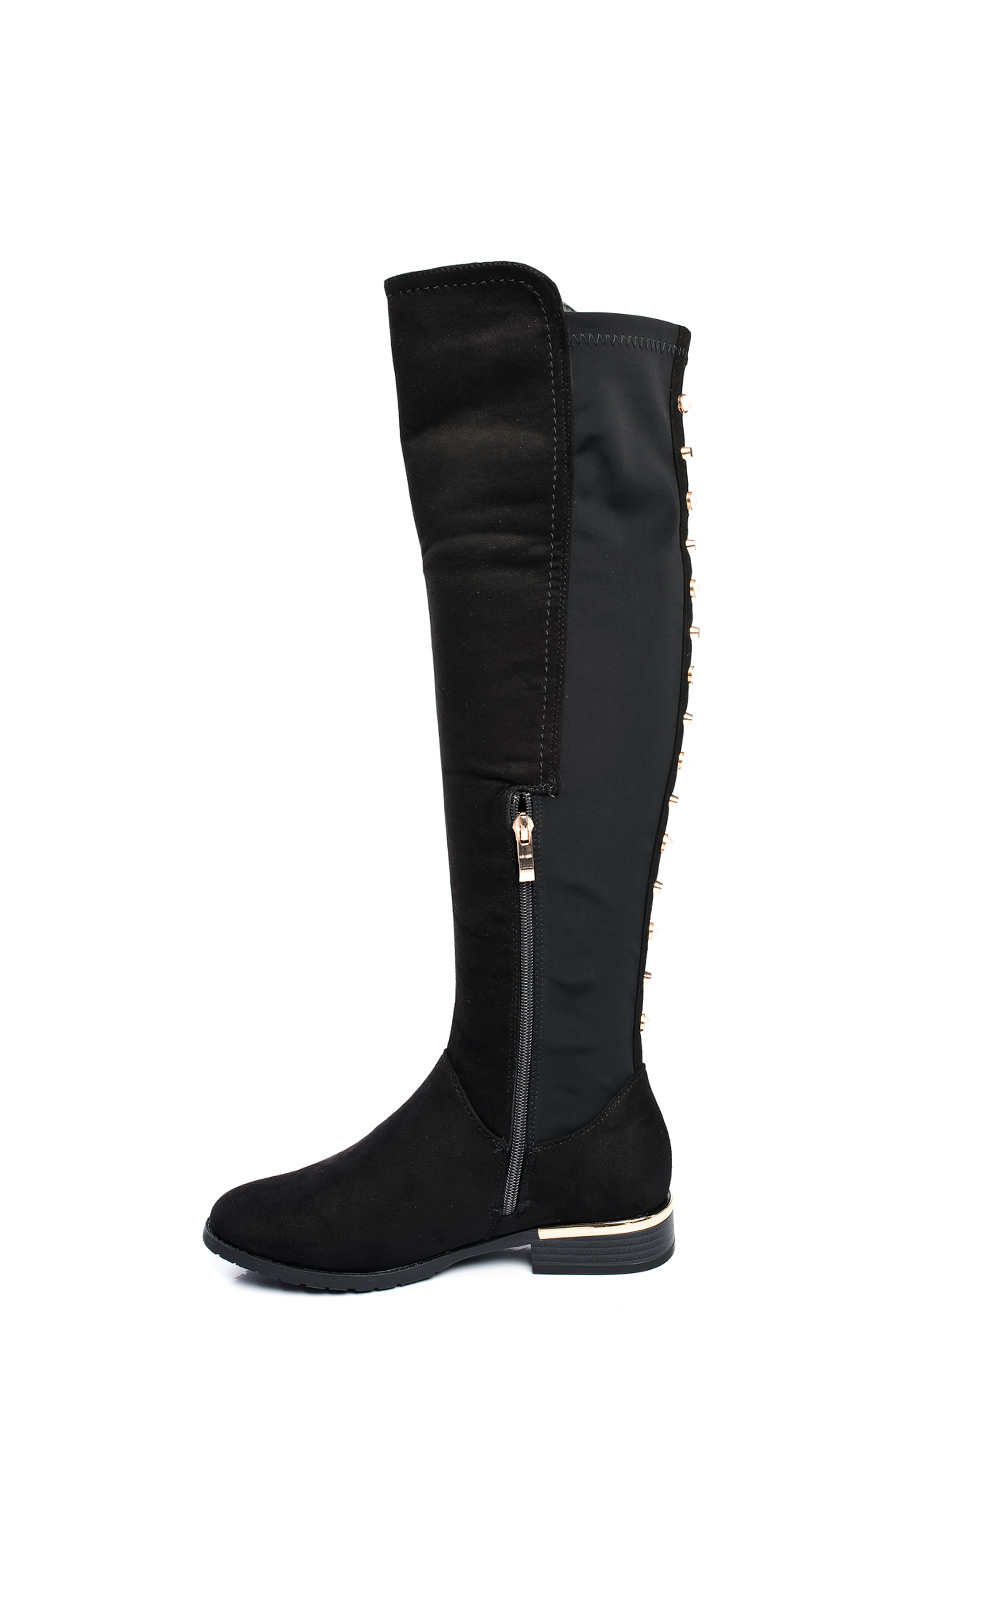 332a670d Cleo Faux Suede Studded Knee High Boots